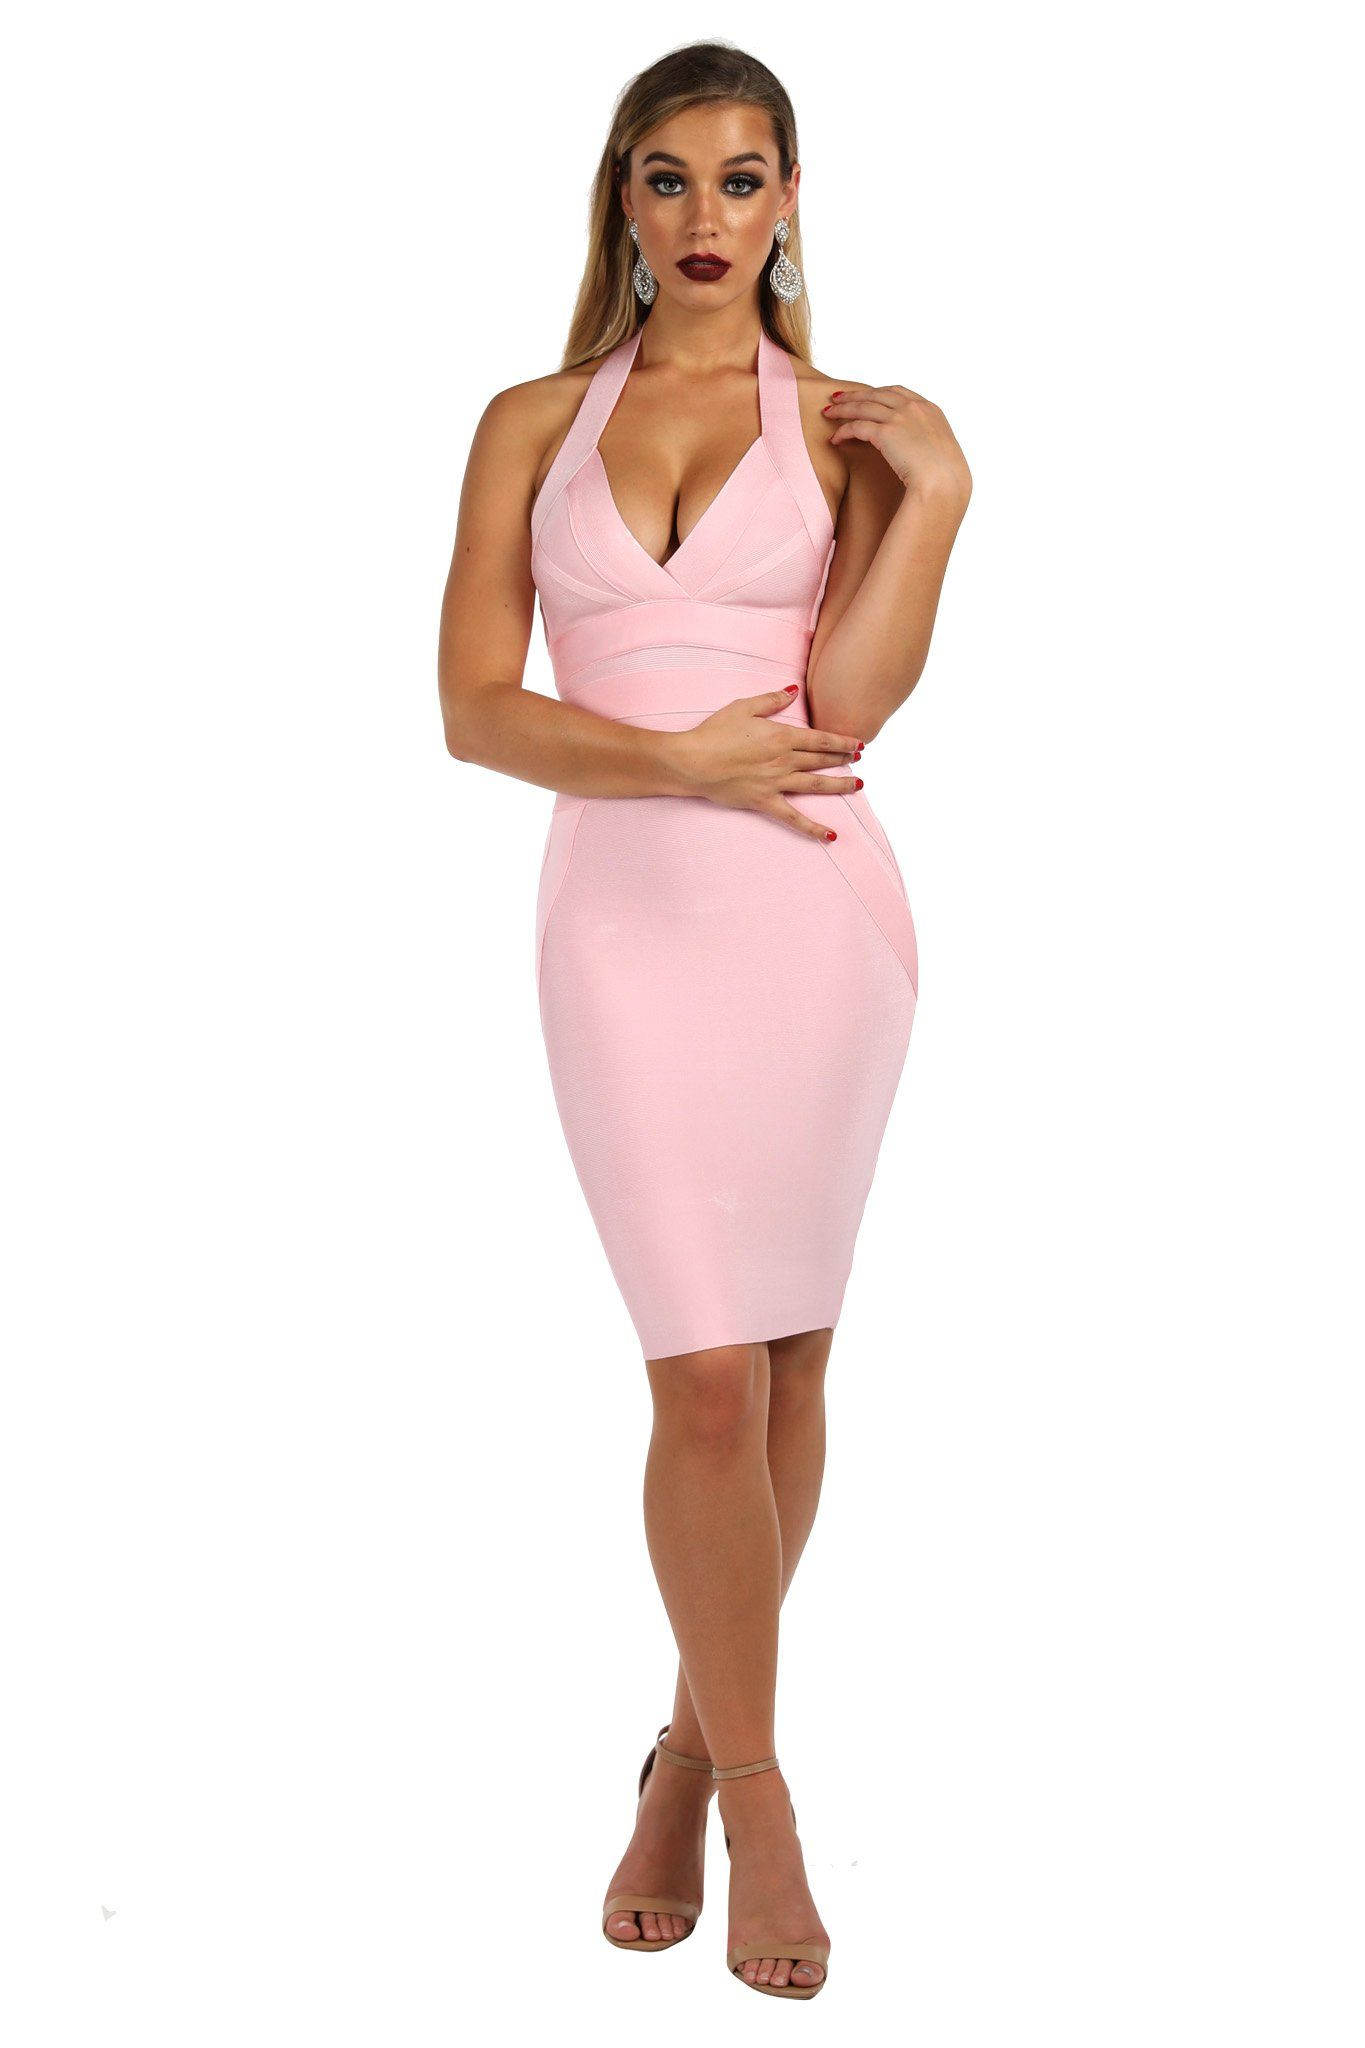 Pink tight fitted bandage dress in knee length with plunging halter neckline and open back design